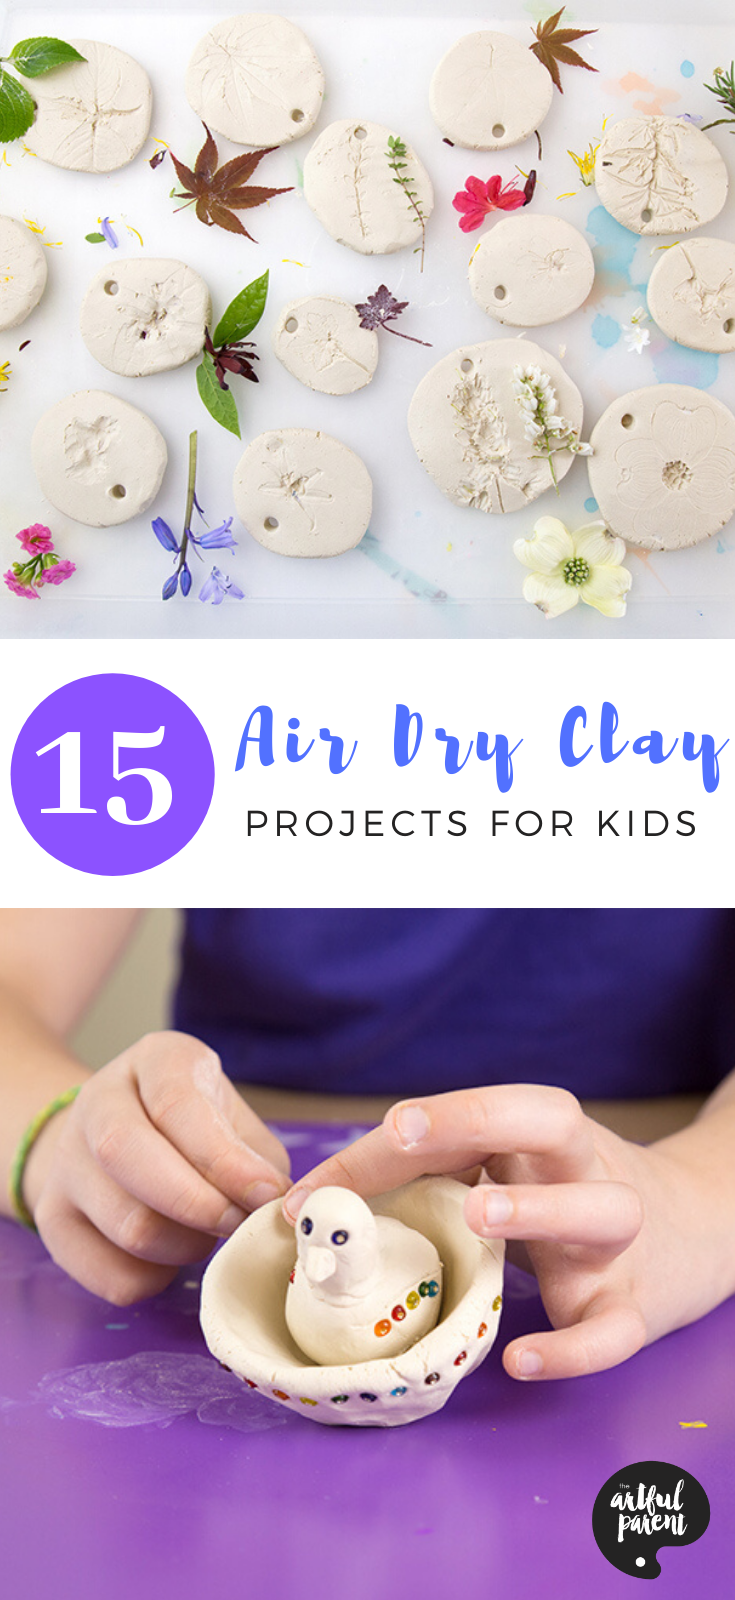 15 Amazing Air Dry Clay Projects for Kids